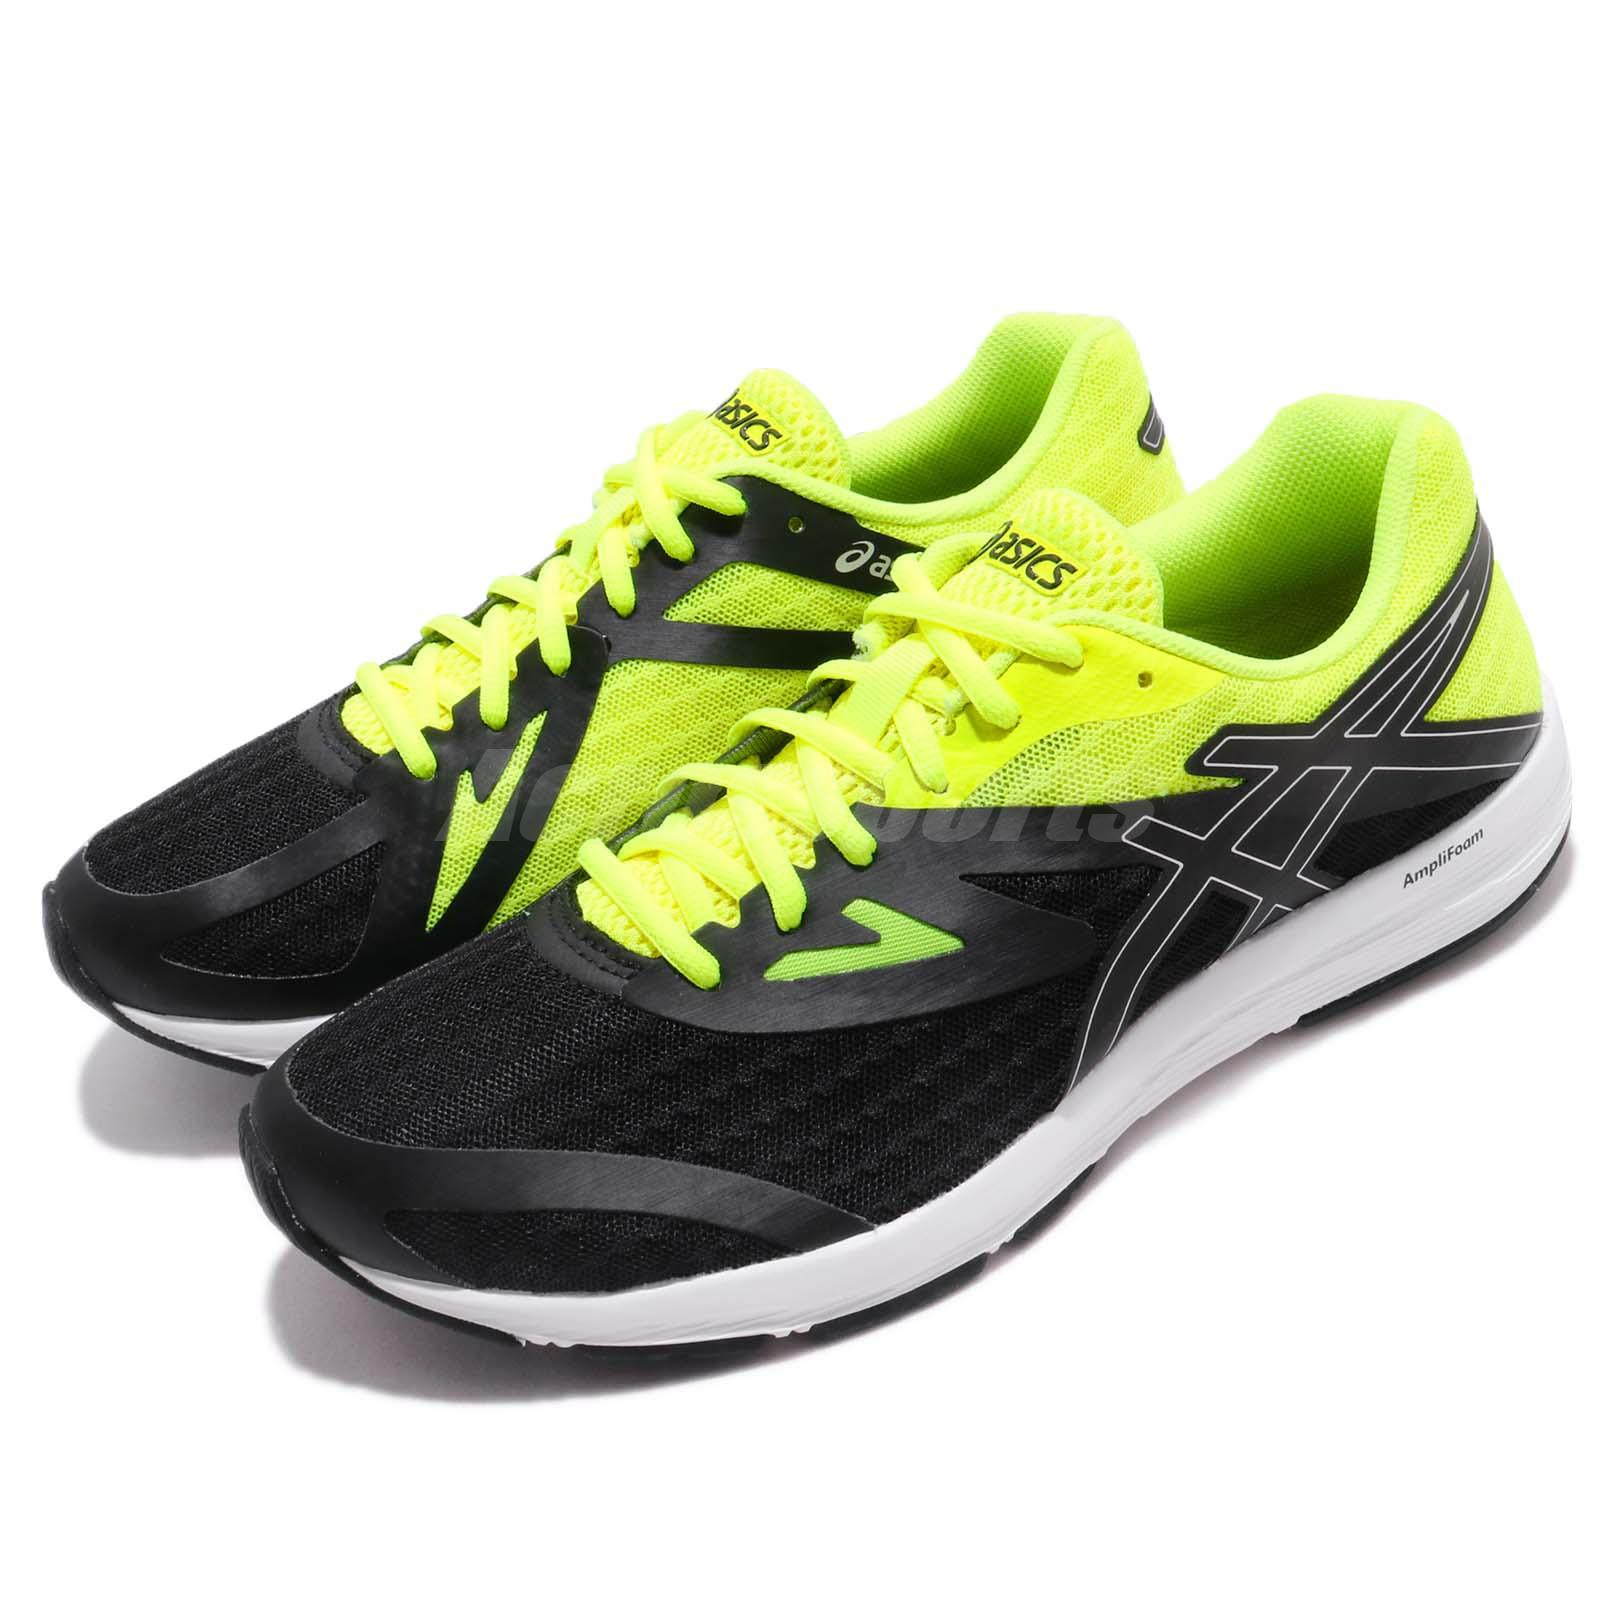 Details about Asics Amplica AmpliFoam Black Yellow Men Running Shoes Sneakers T825N-9093